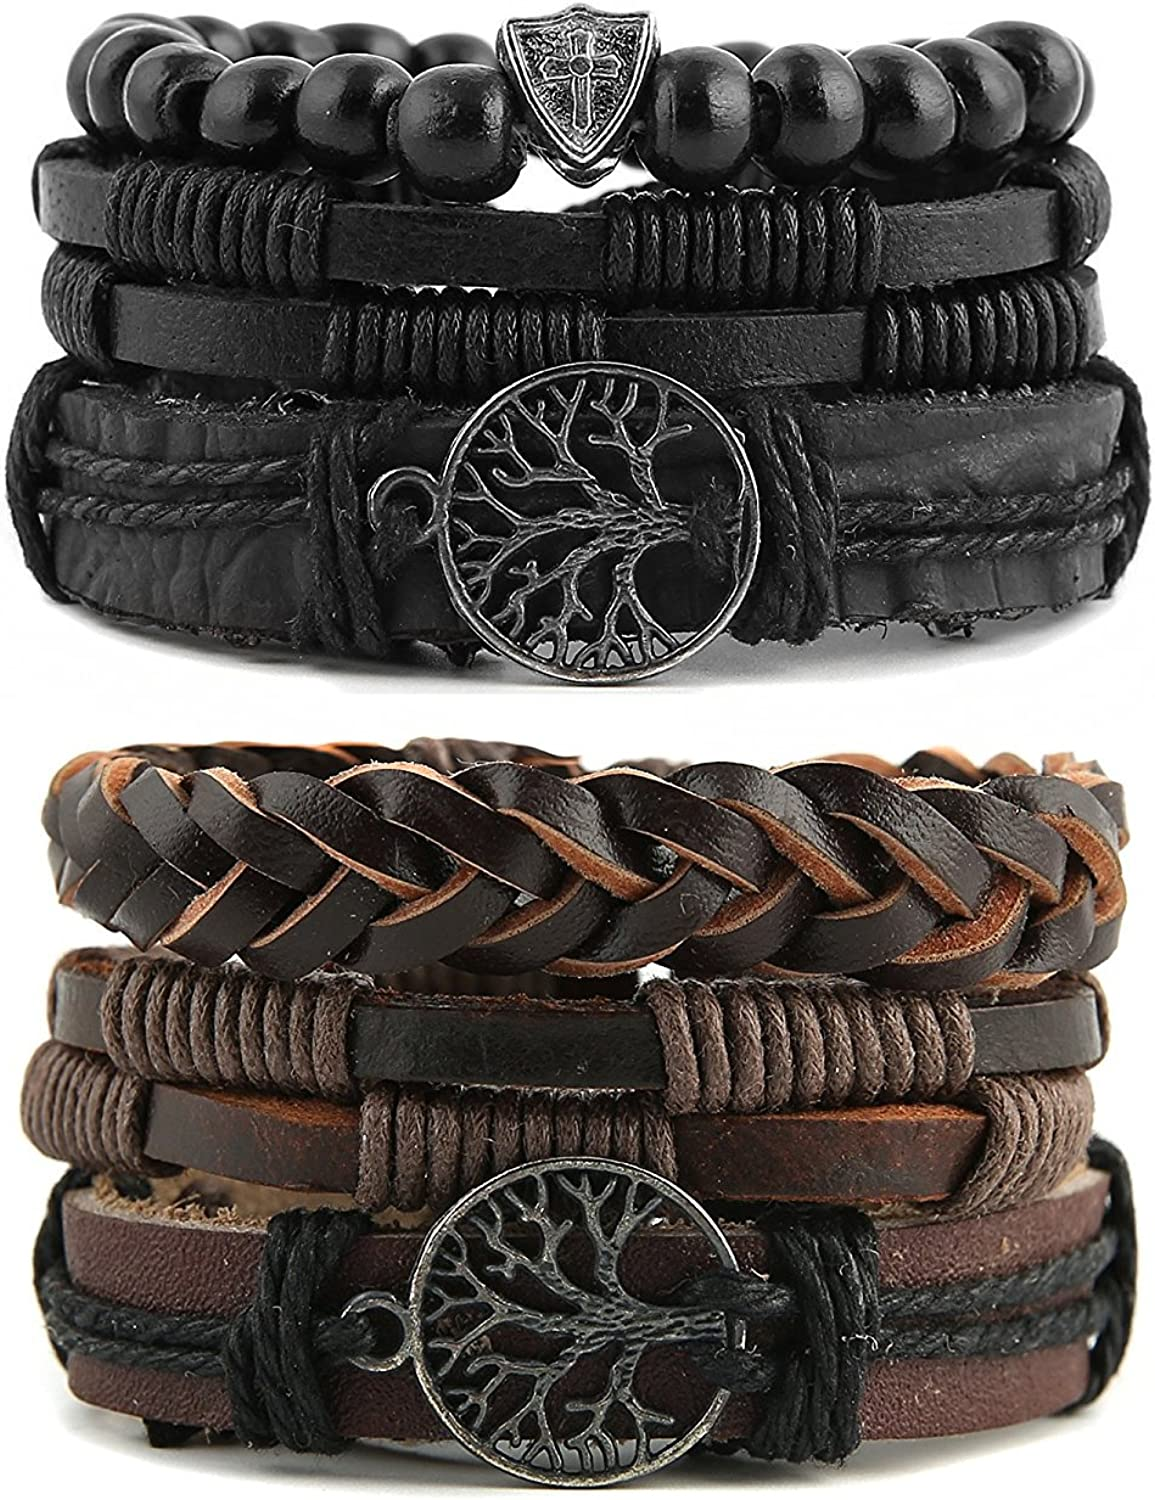 HZMAN Genuine Leather Tree of life Bracelets Men Women, Tiger Eye Natural Stone Lava Rock Beads Ethnic Tribal Elastic Bracelets Wristbands